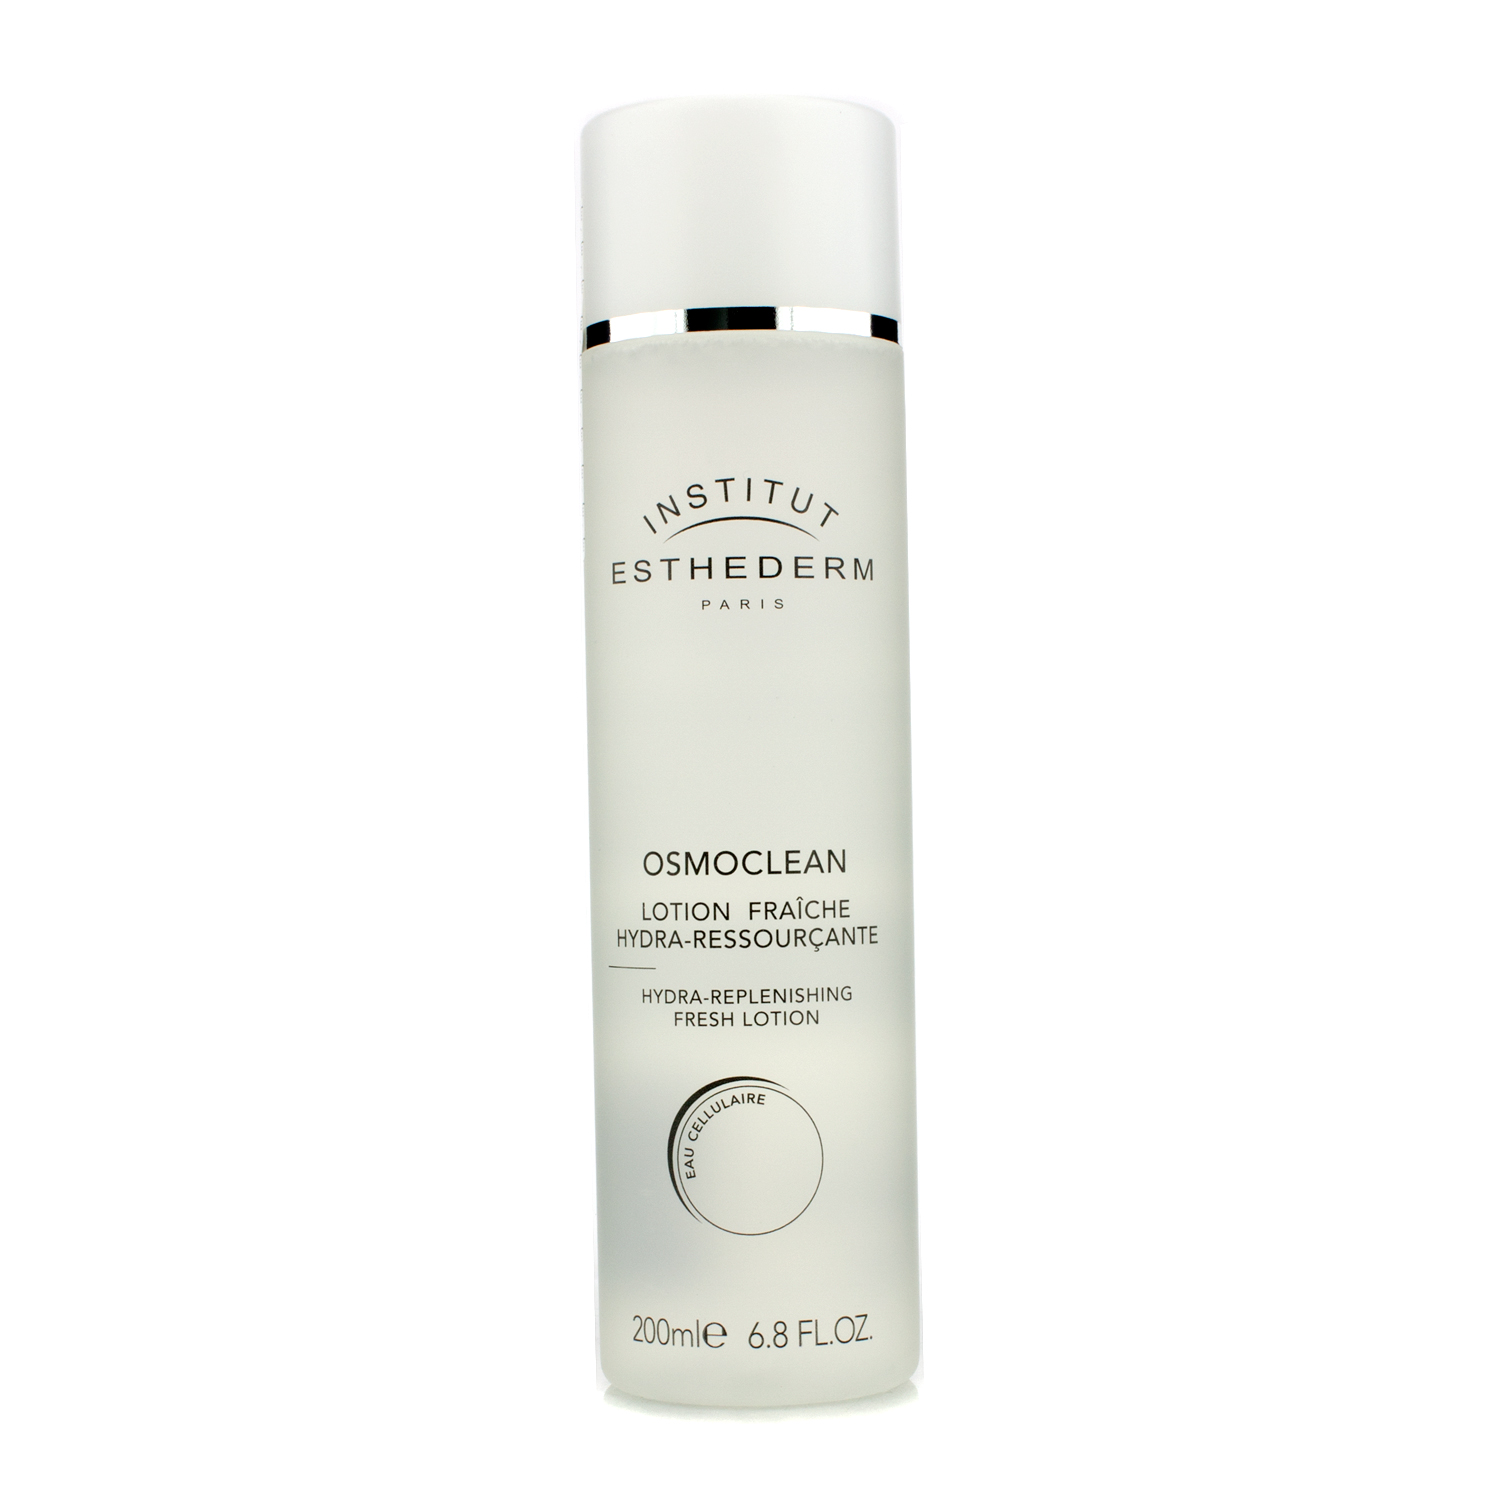 Esthederm - Osmoclean Hydra-Replenishing Fresh Lotion - 200ml/6.8oz  to enhance skin tone and eliminate dark spots.Provides sustained moisture delivery for optimal hydration.APPLICATION:Smooth a generous amount to face and neck